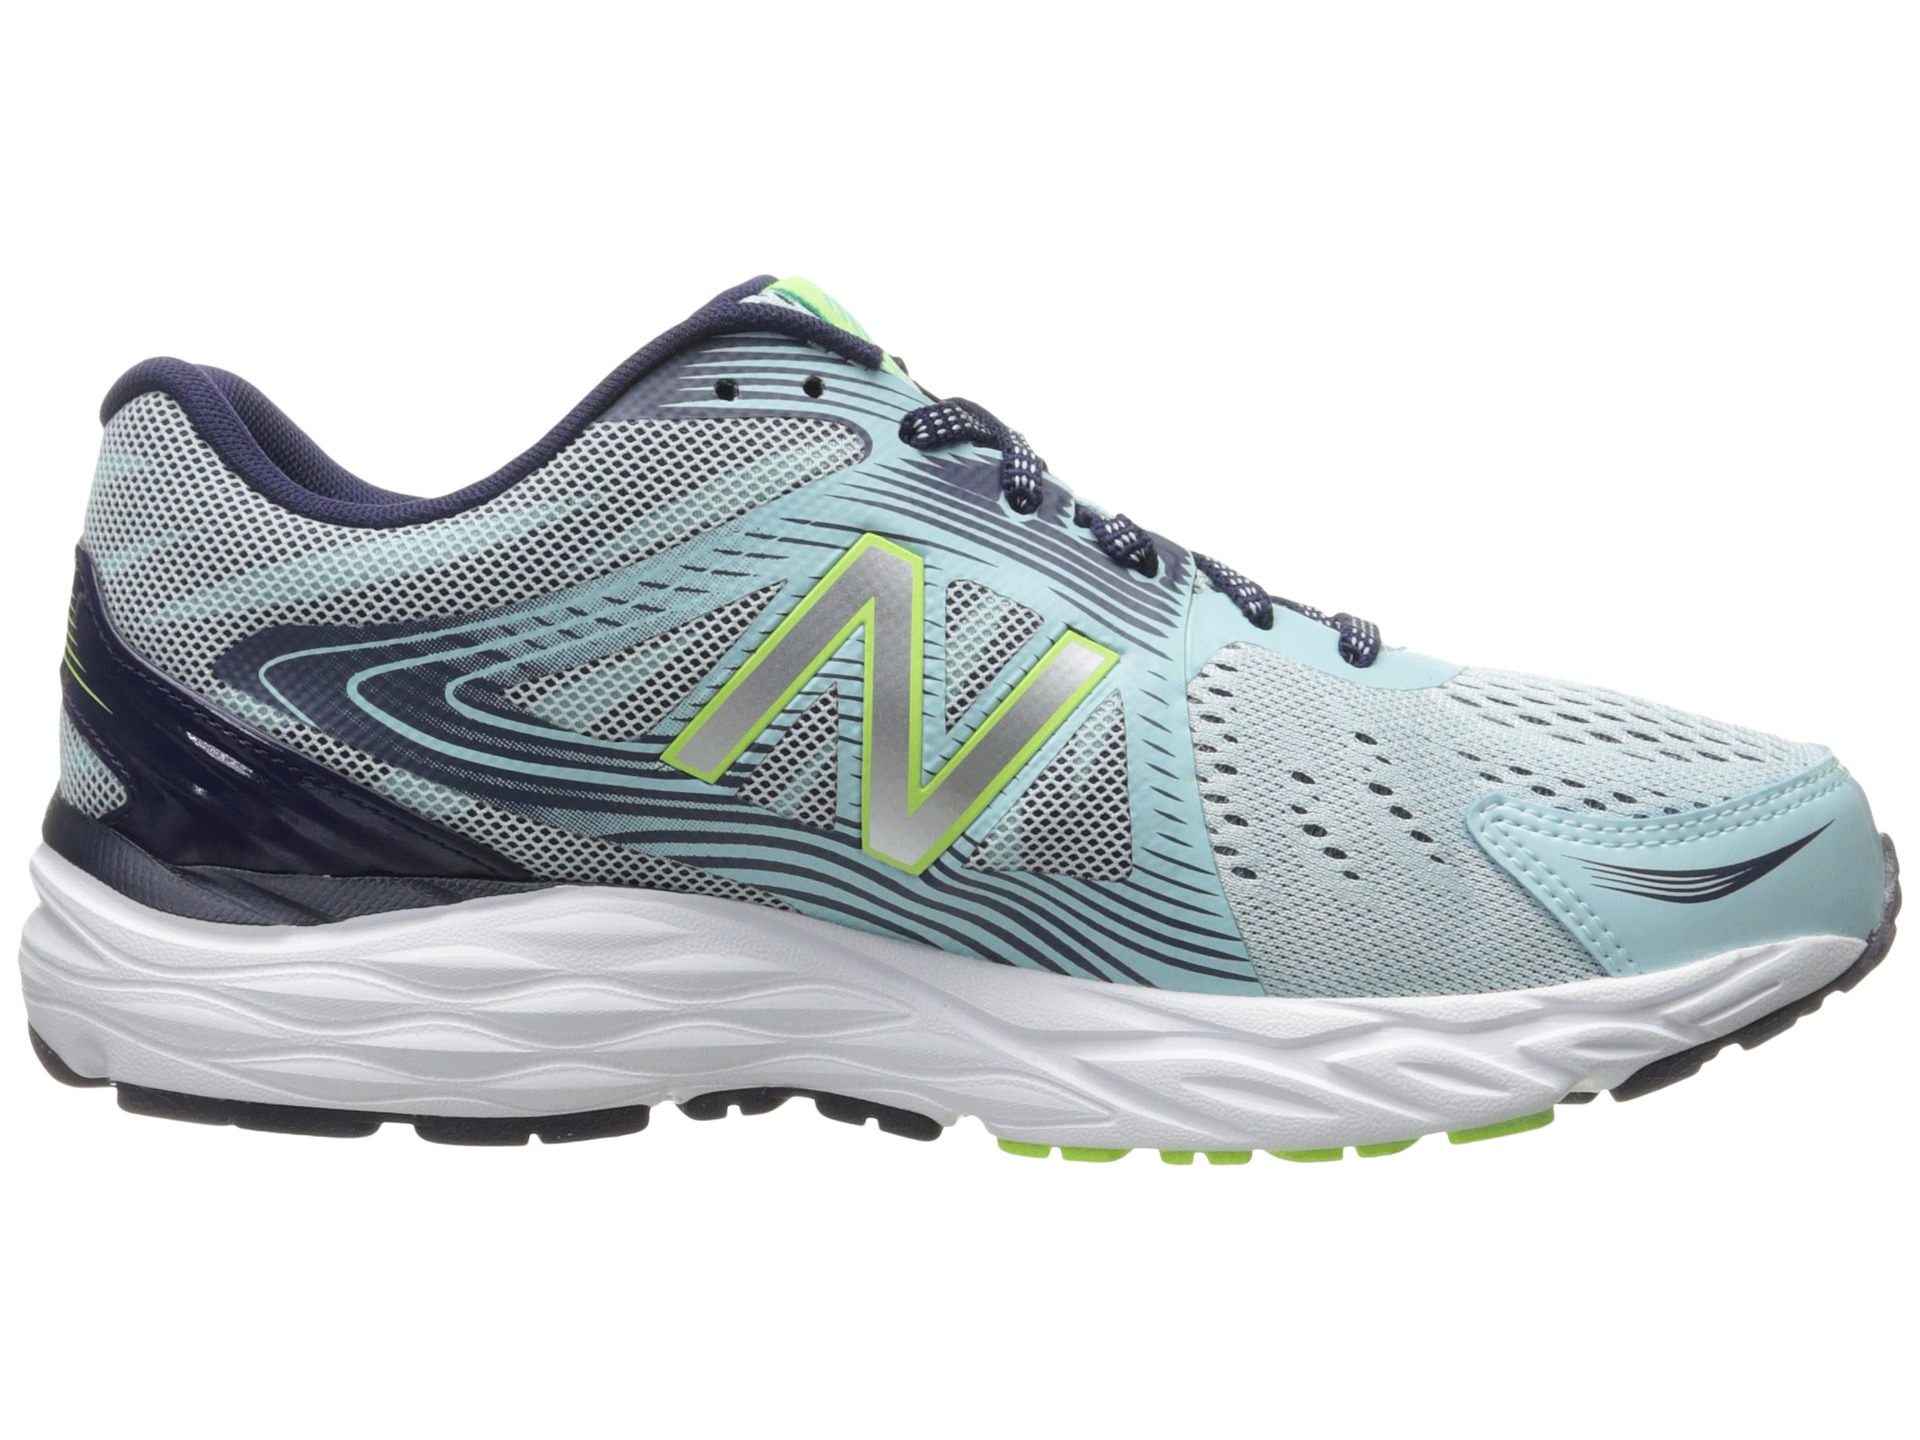 New Balance Womens Running Shoes Zappos